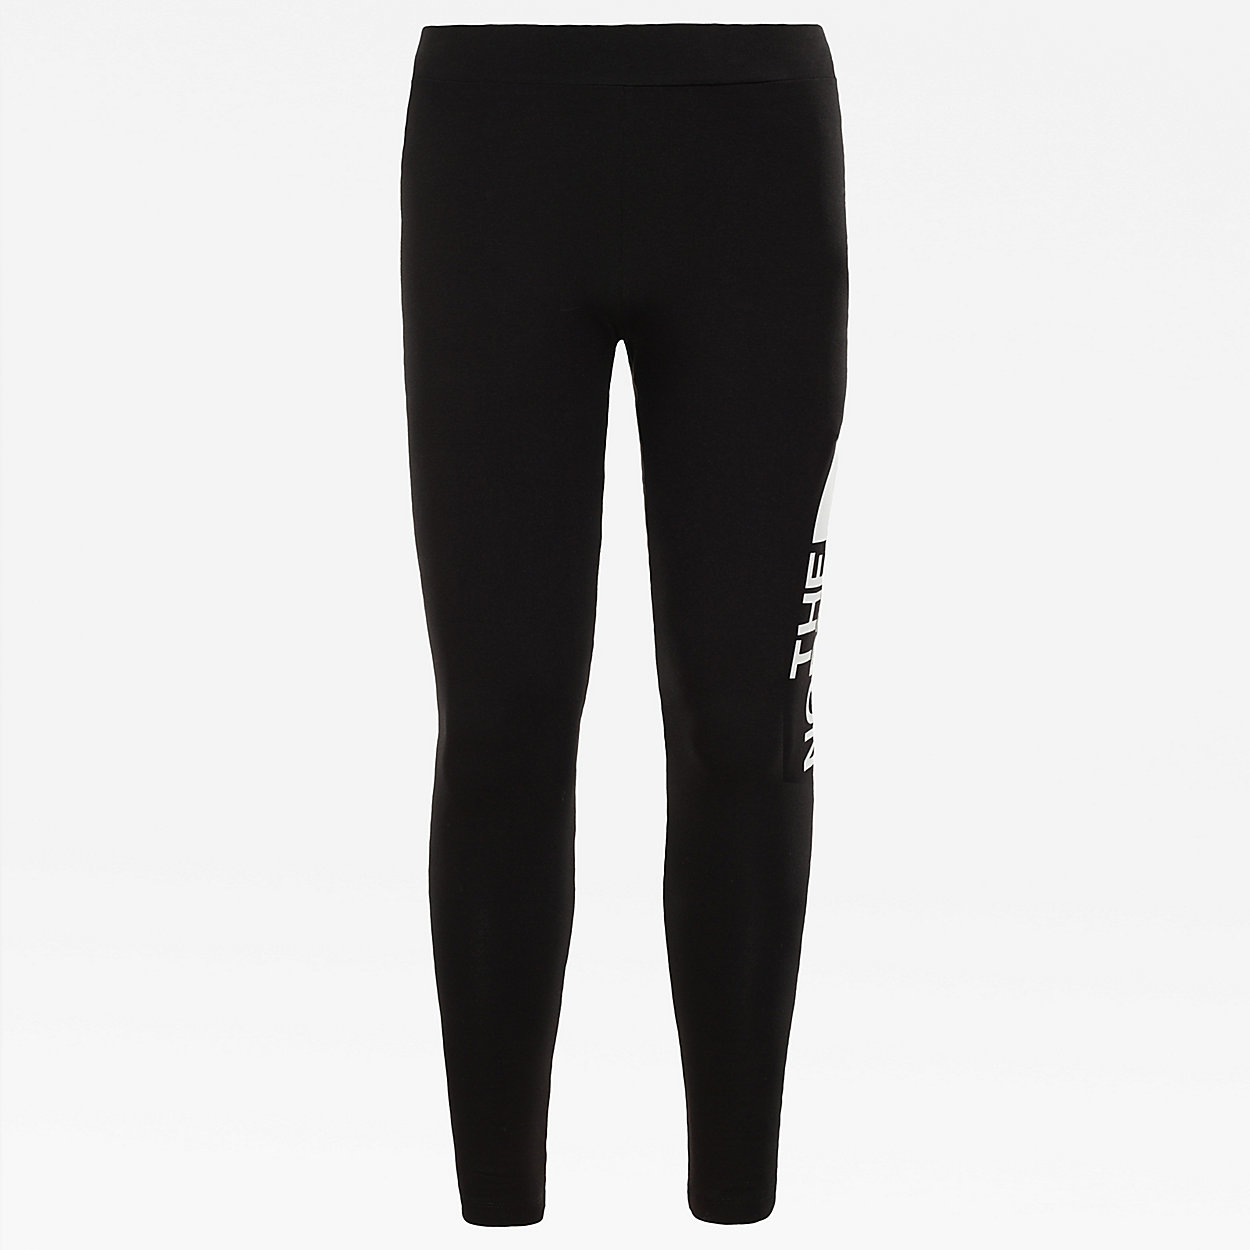 LEGGINGS BAMBINA THE NORTH FACE | Leggings | 3VEHKY41